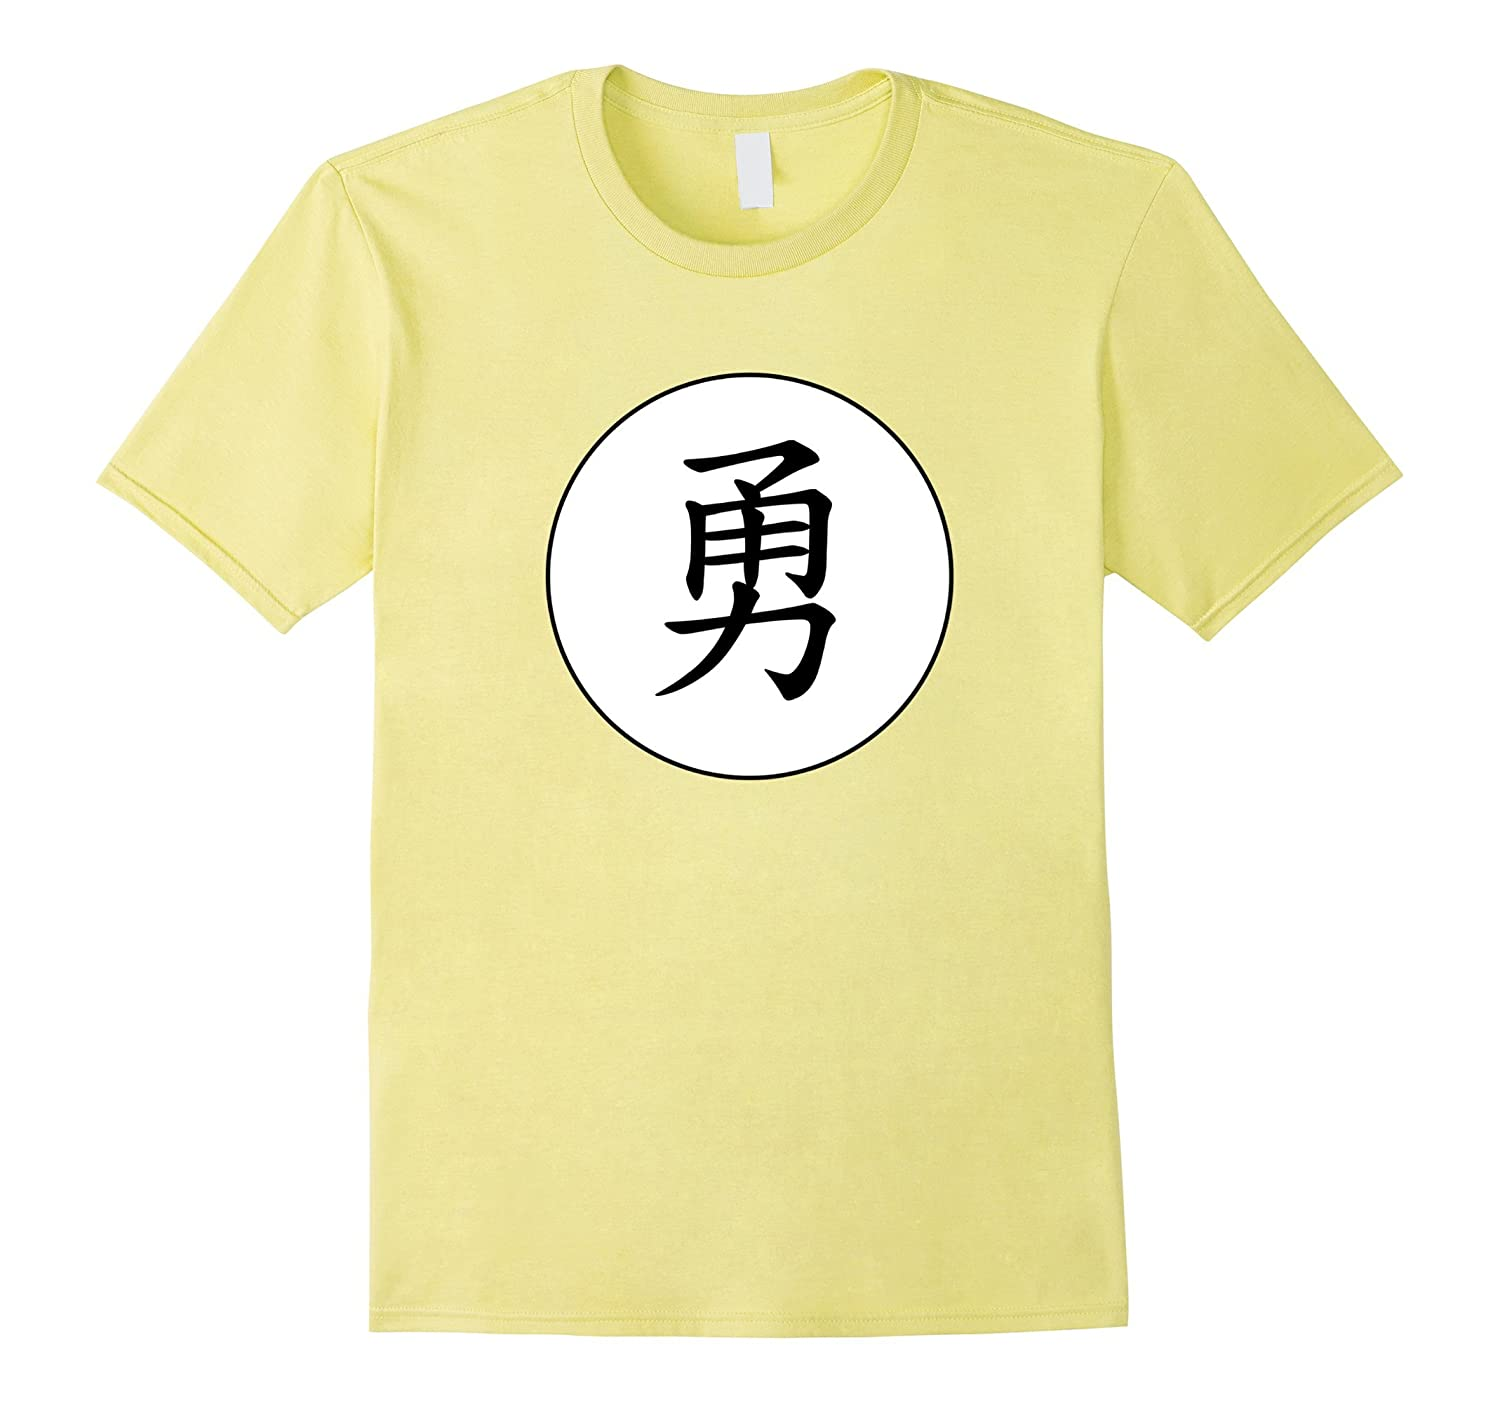 5da88188 Warrior and Bravery Writing T-Shirt Design in Chinese Symbol-ANZ ...